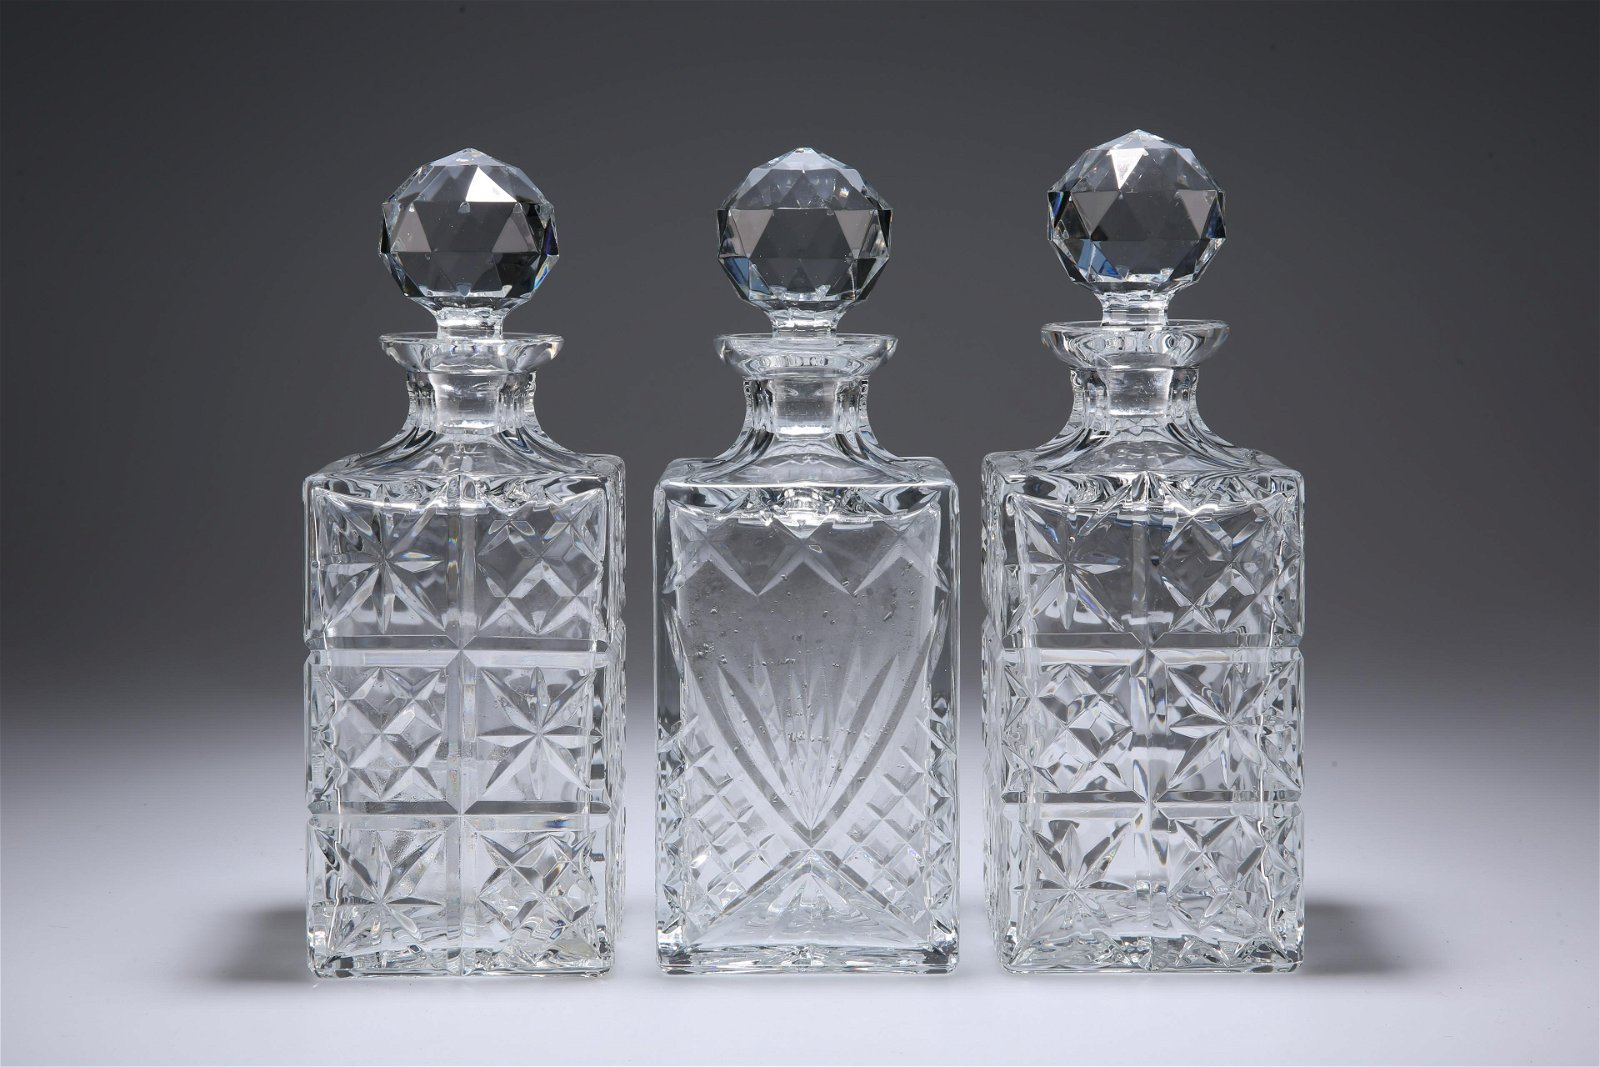 THREE LARGE SQUARE-SECTION GLASS DECANTERS. 26.5cm high